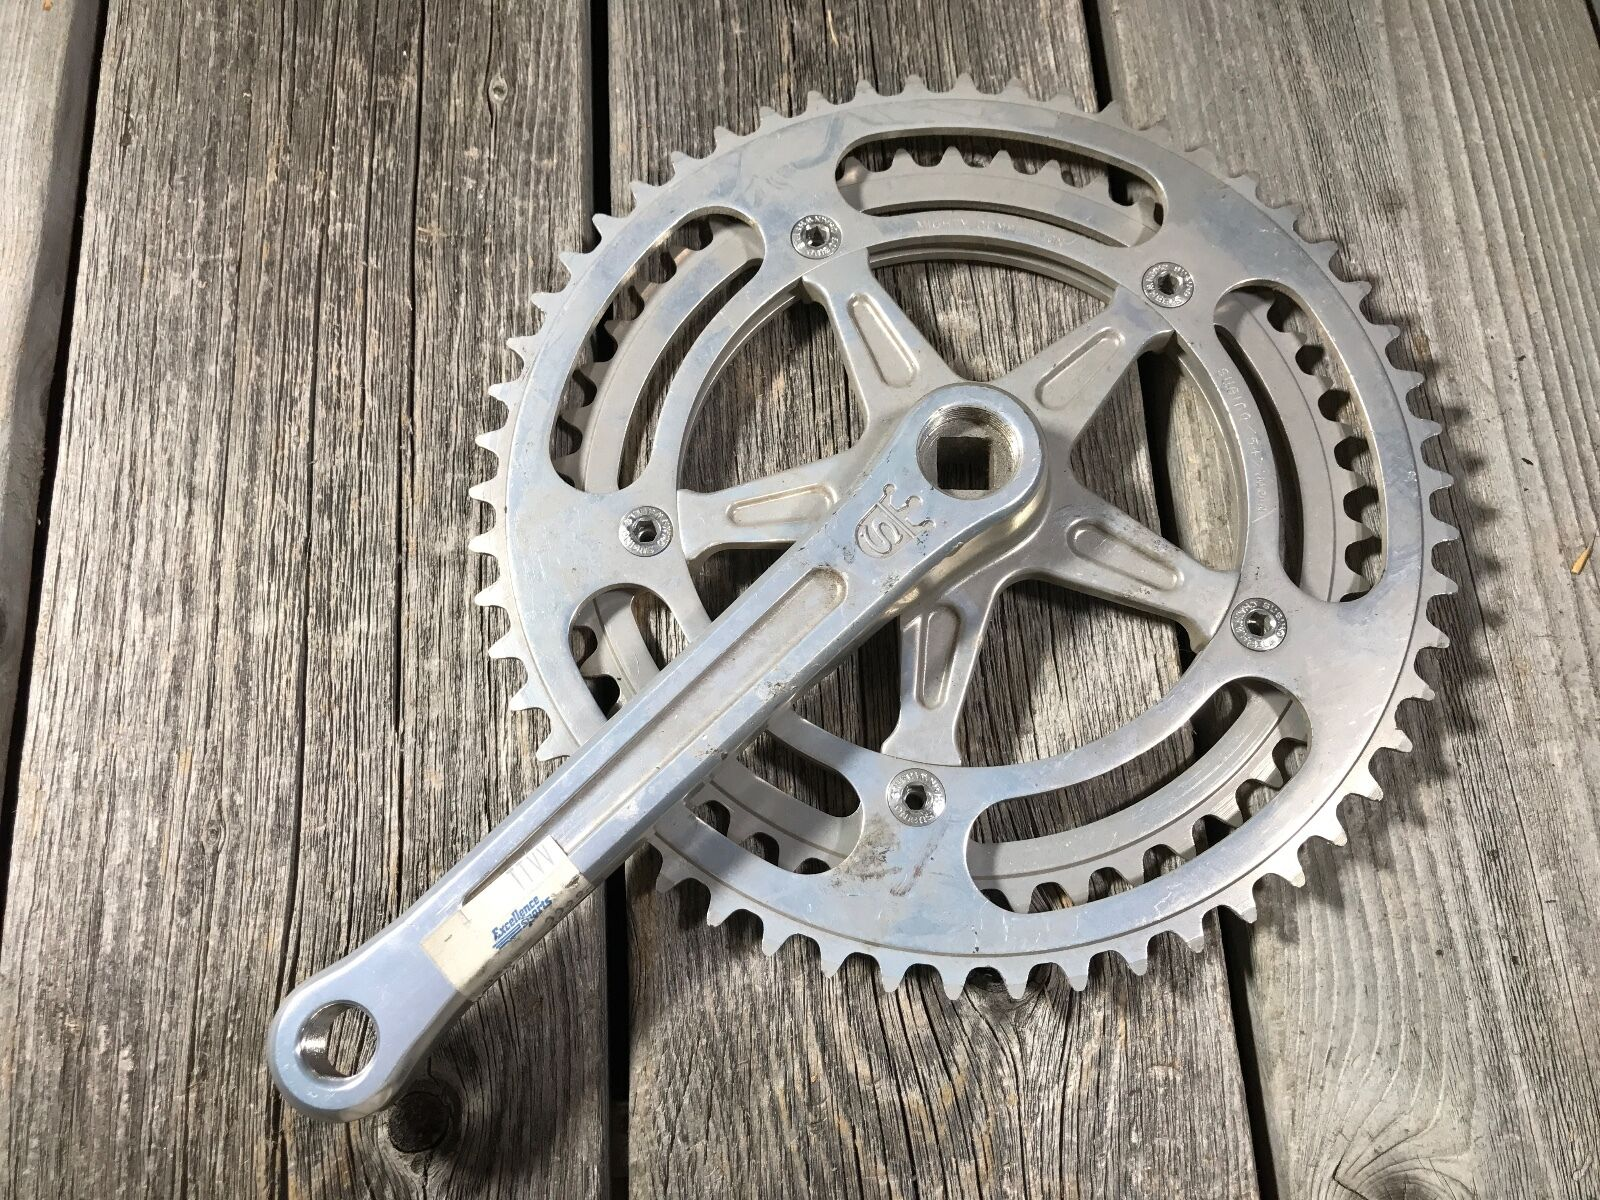 SUGINO MIGHTY COMPETITION CRANKSET DRIVE SIDE 170MM  54 46 144BCD MADE JAPAN NOS  new products novelty items